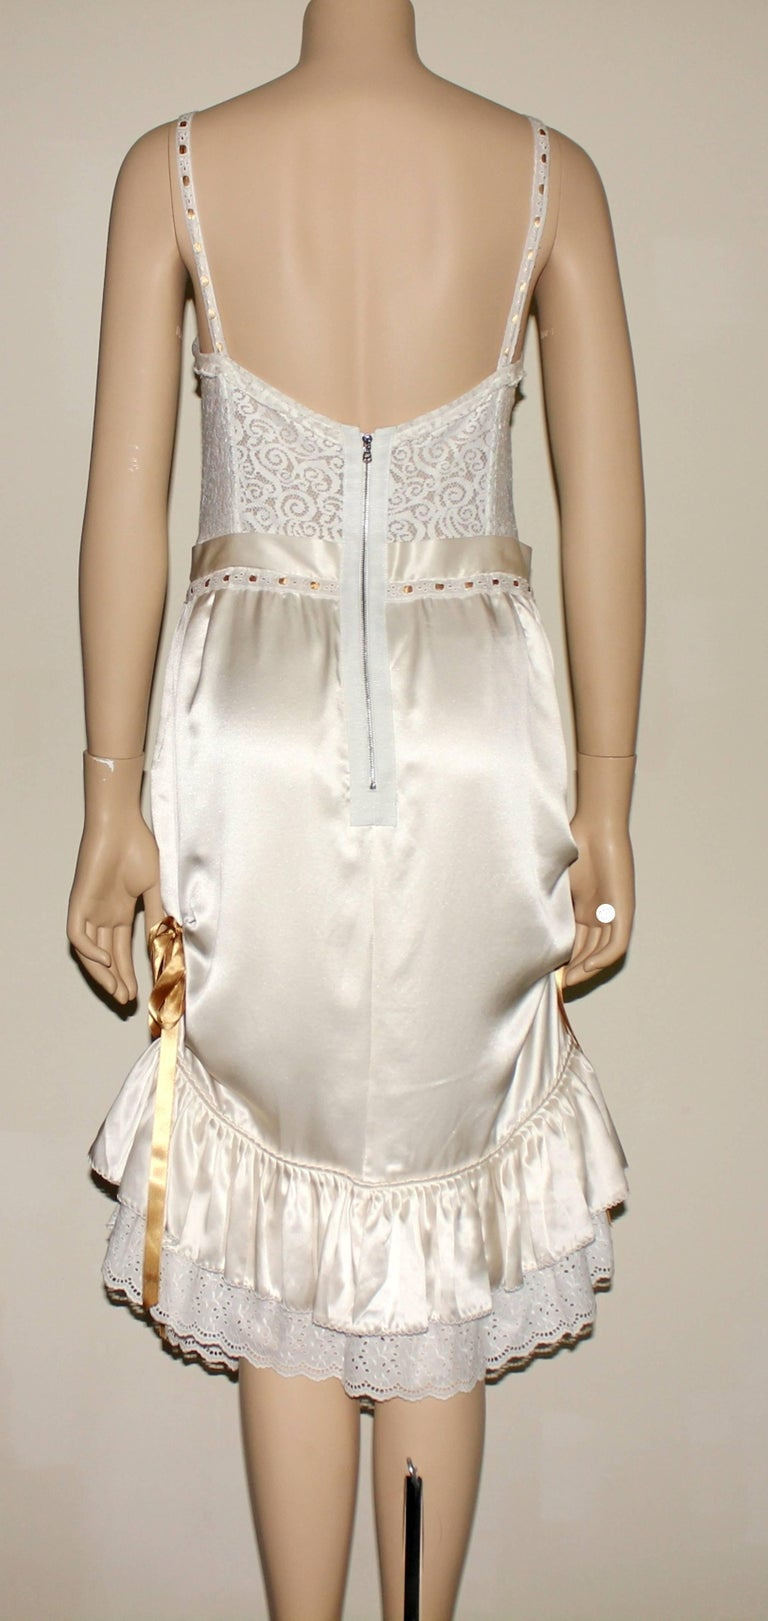 Dolce & Gabbana White Corset Lace Silk Eyelet Dress In New Condition For Sale In Switzerland, CH